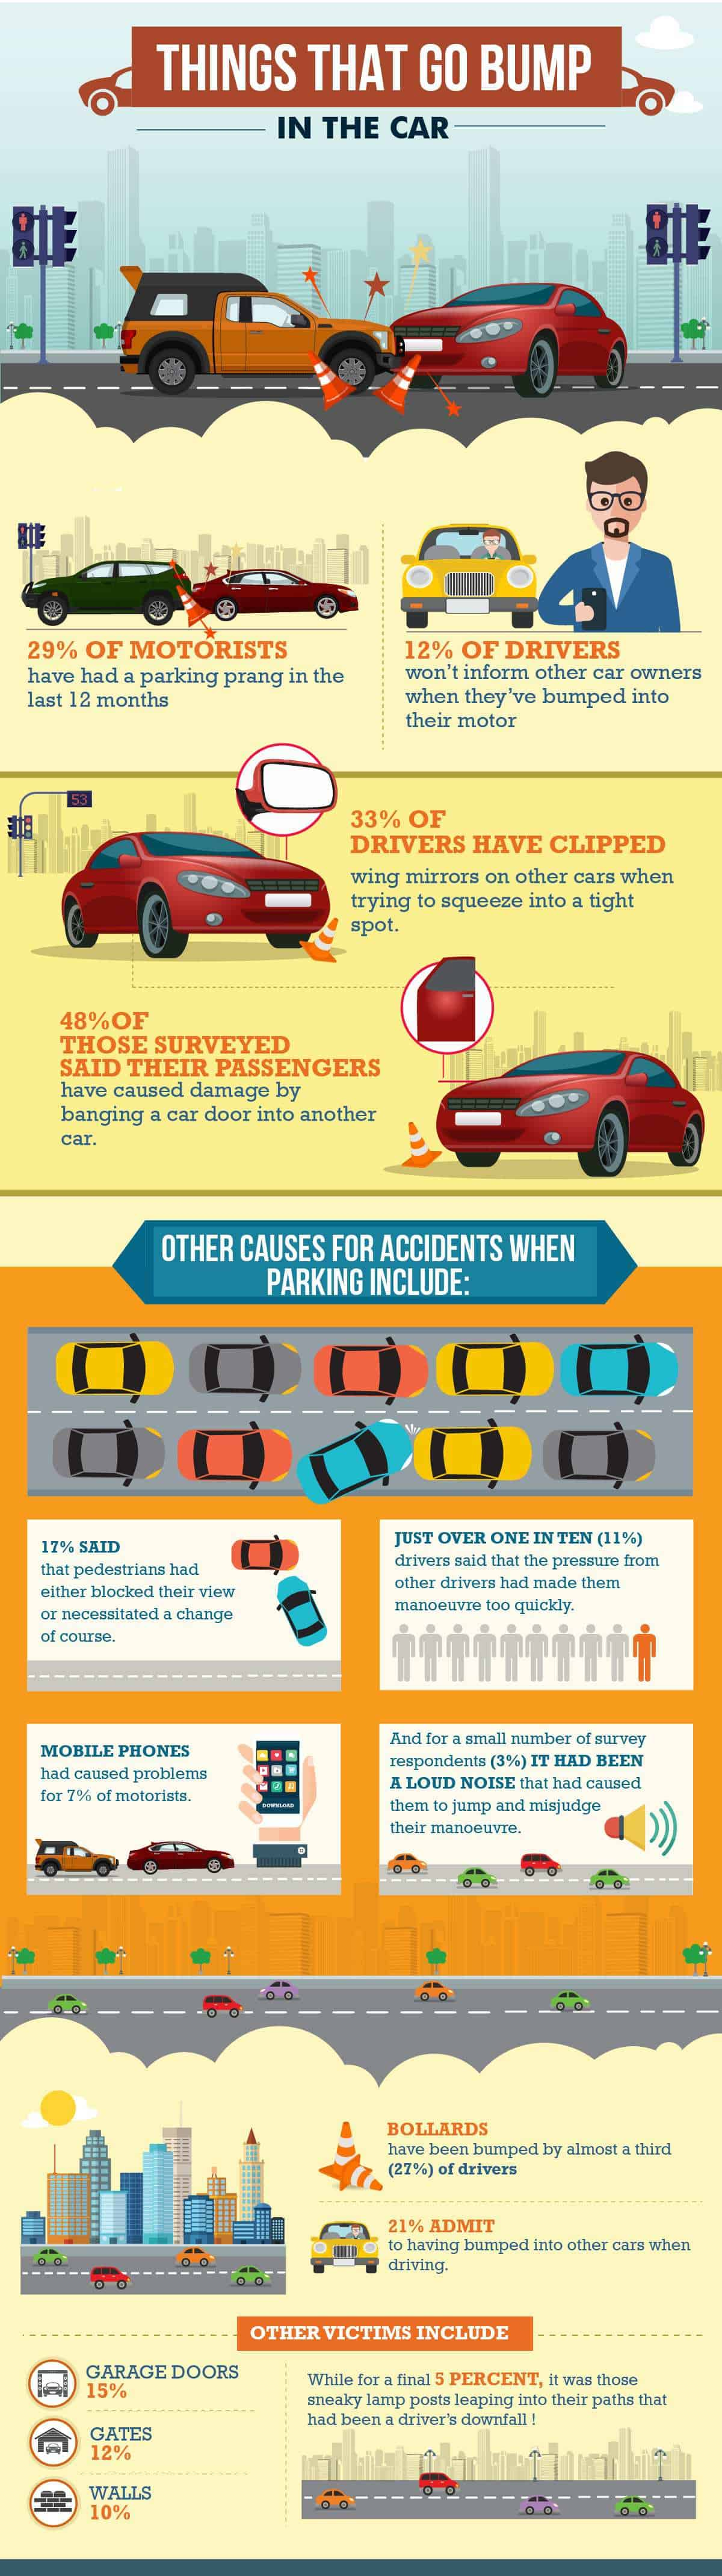 Those Sneaky Parking Accidents: A Statistical Analysis - Infographic